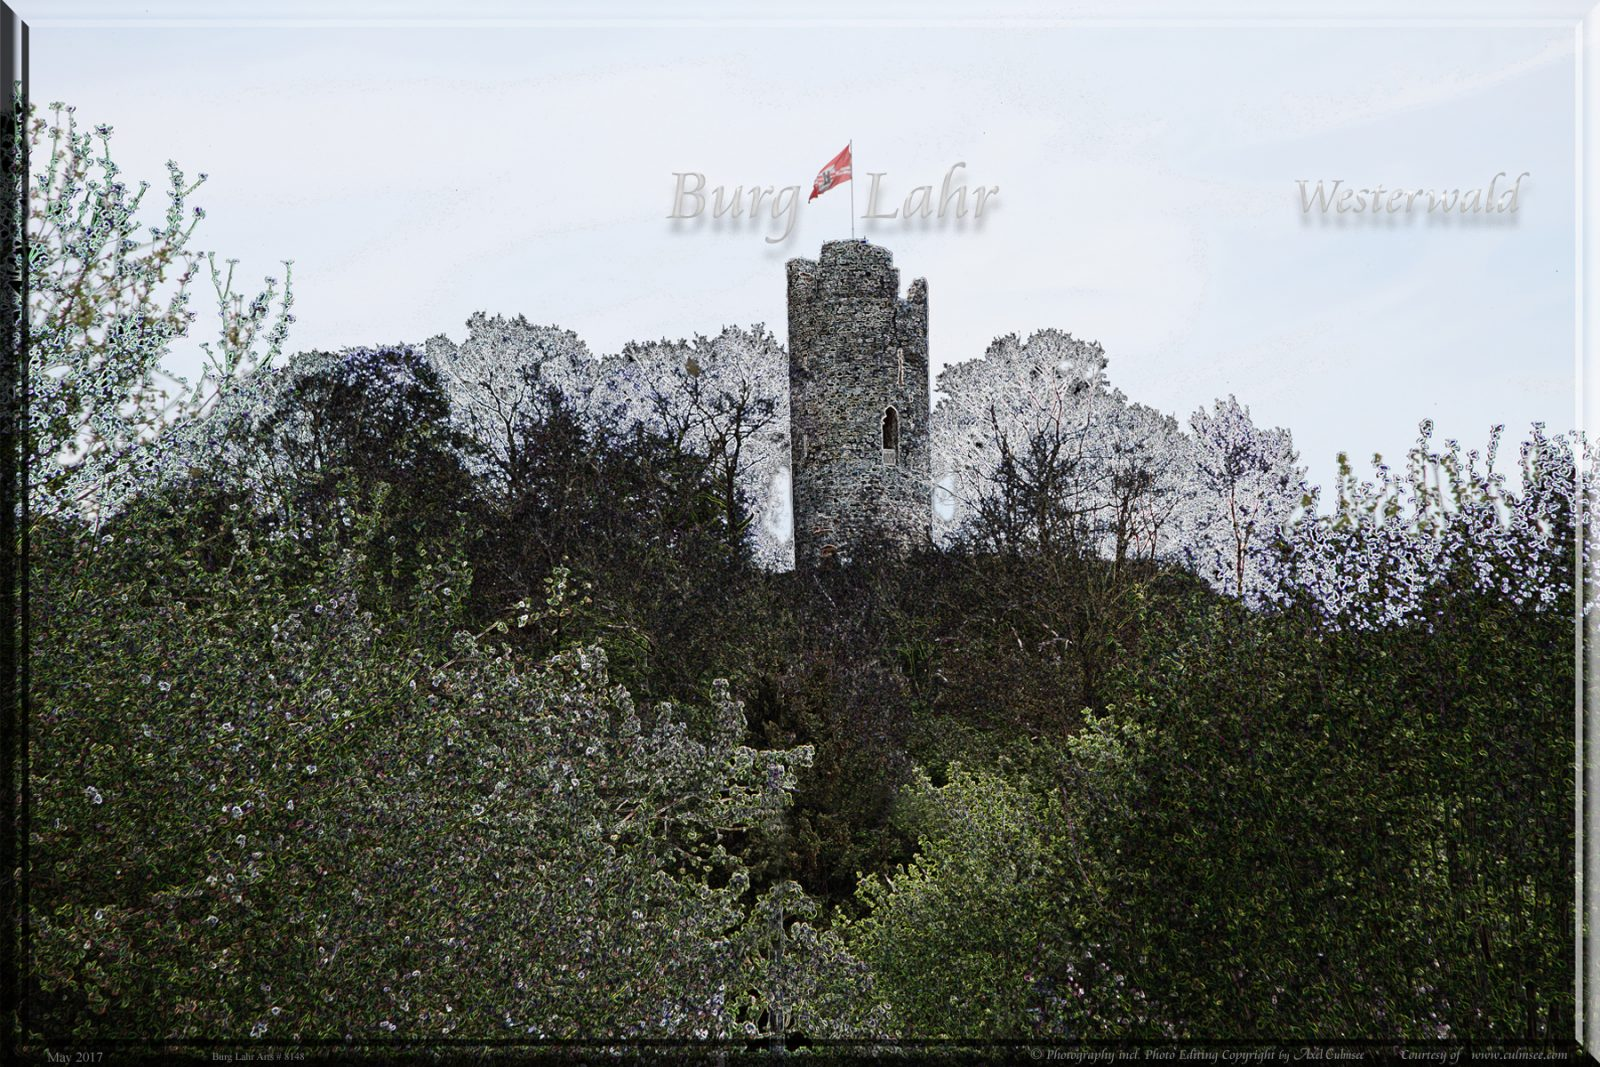 Burg Lahr Westerwald Photo Editing by Axel Culmsee